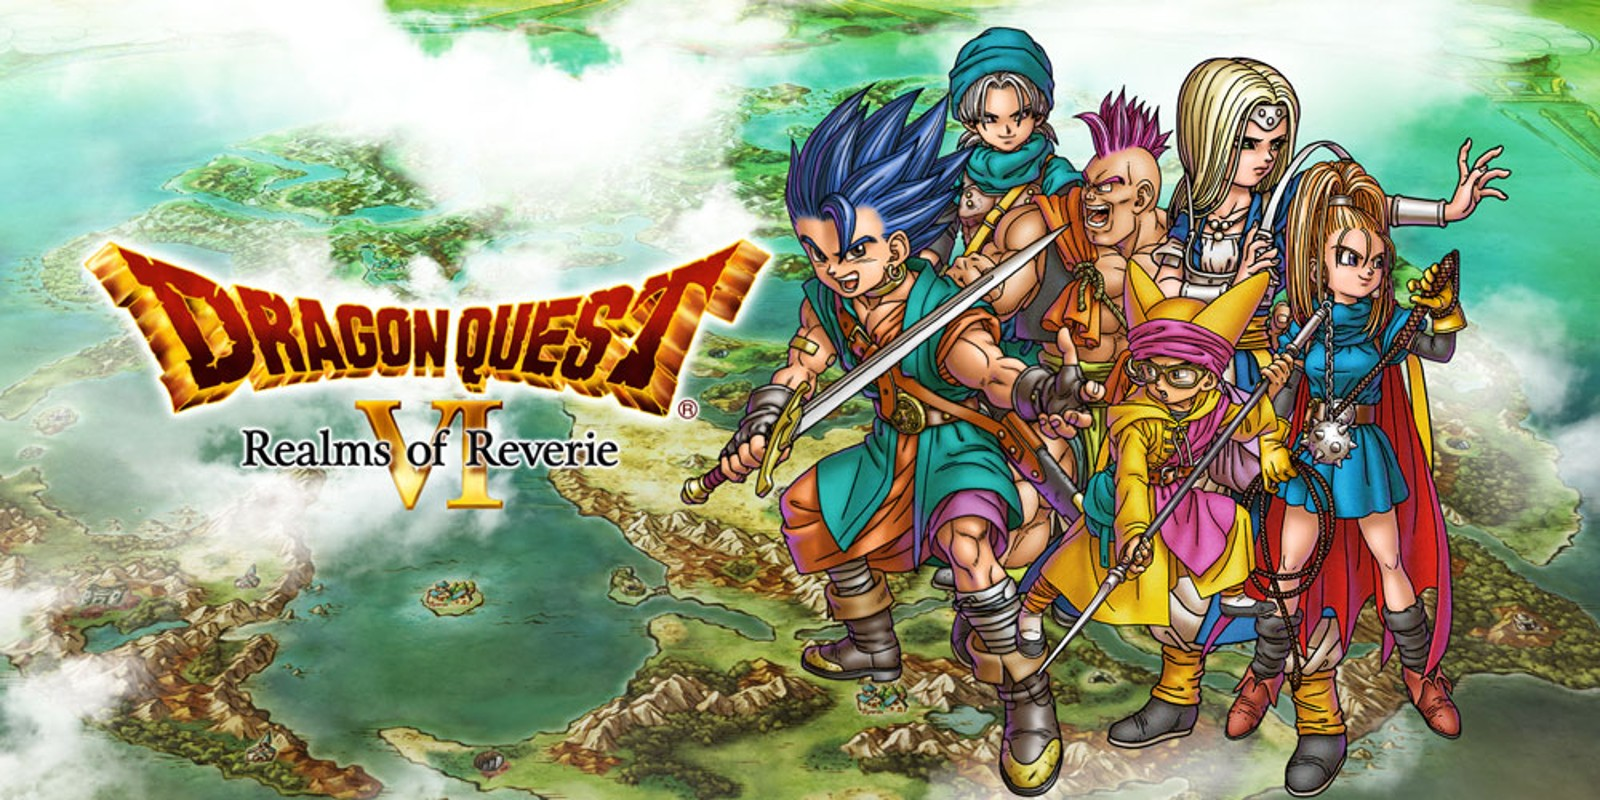 DRAGON QUEST VI: Realms of Reverie